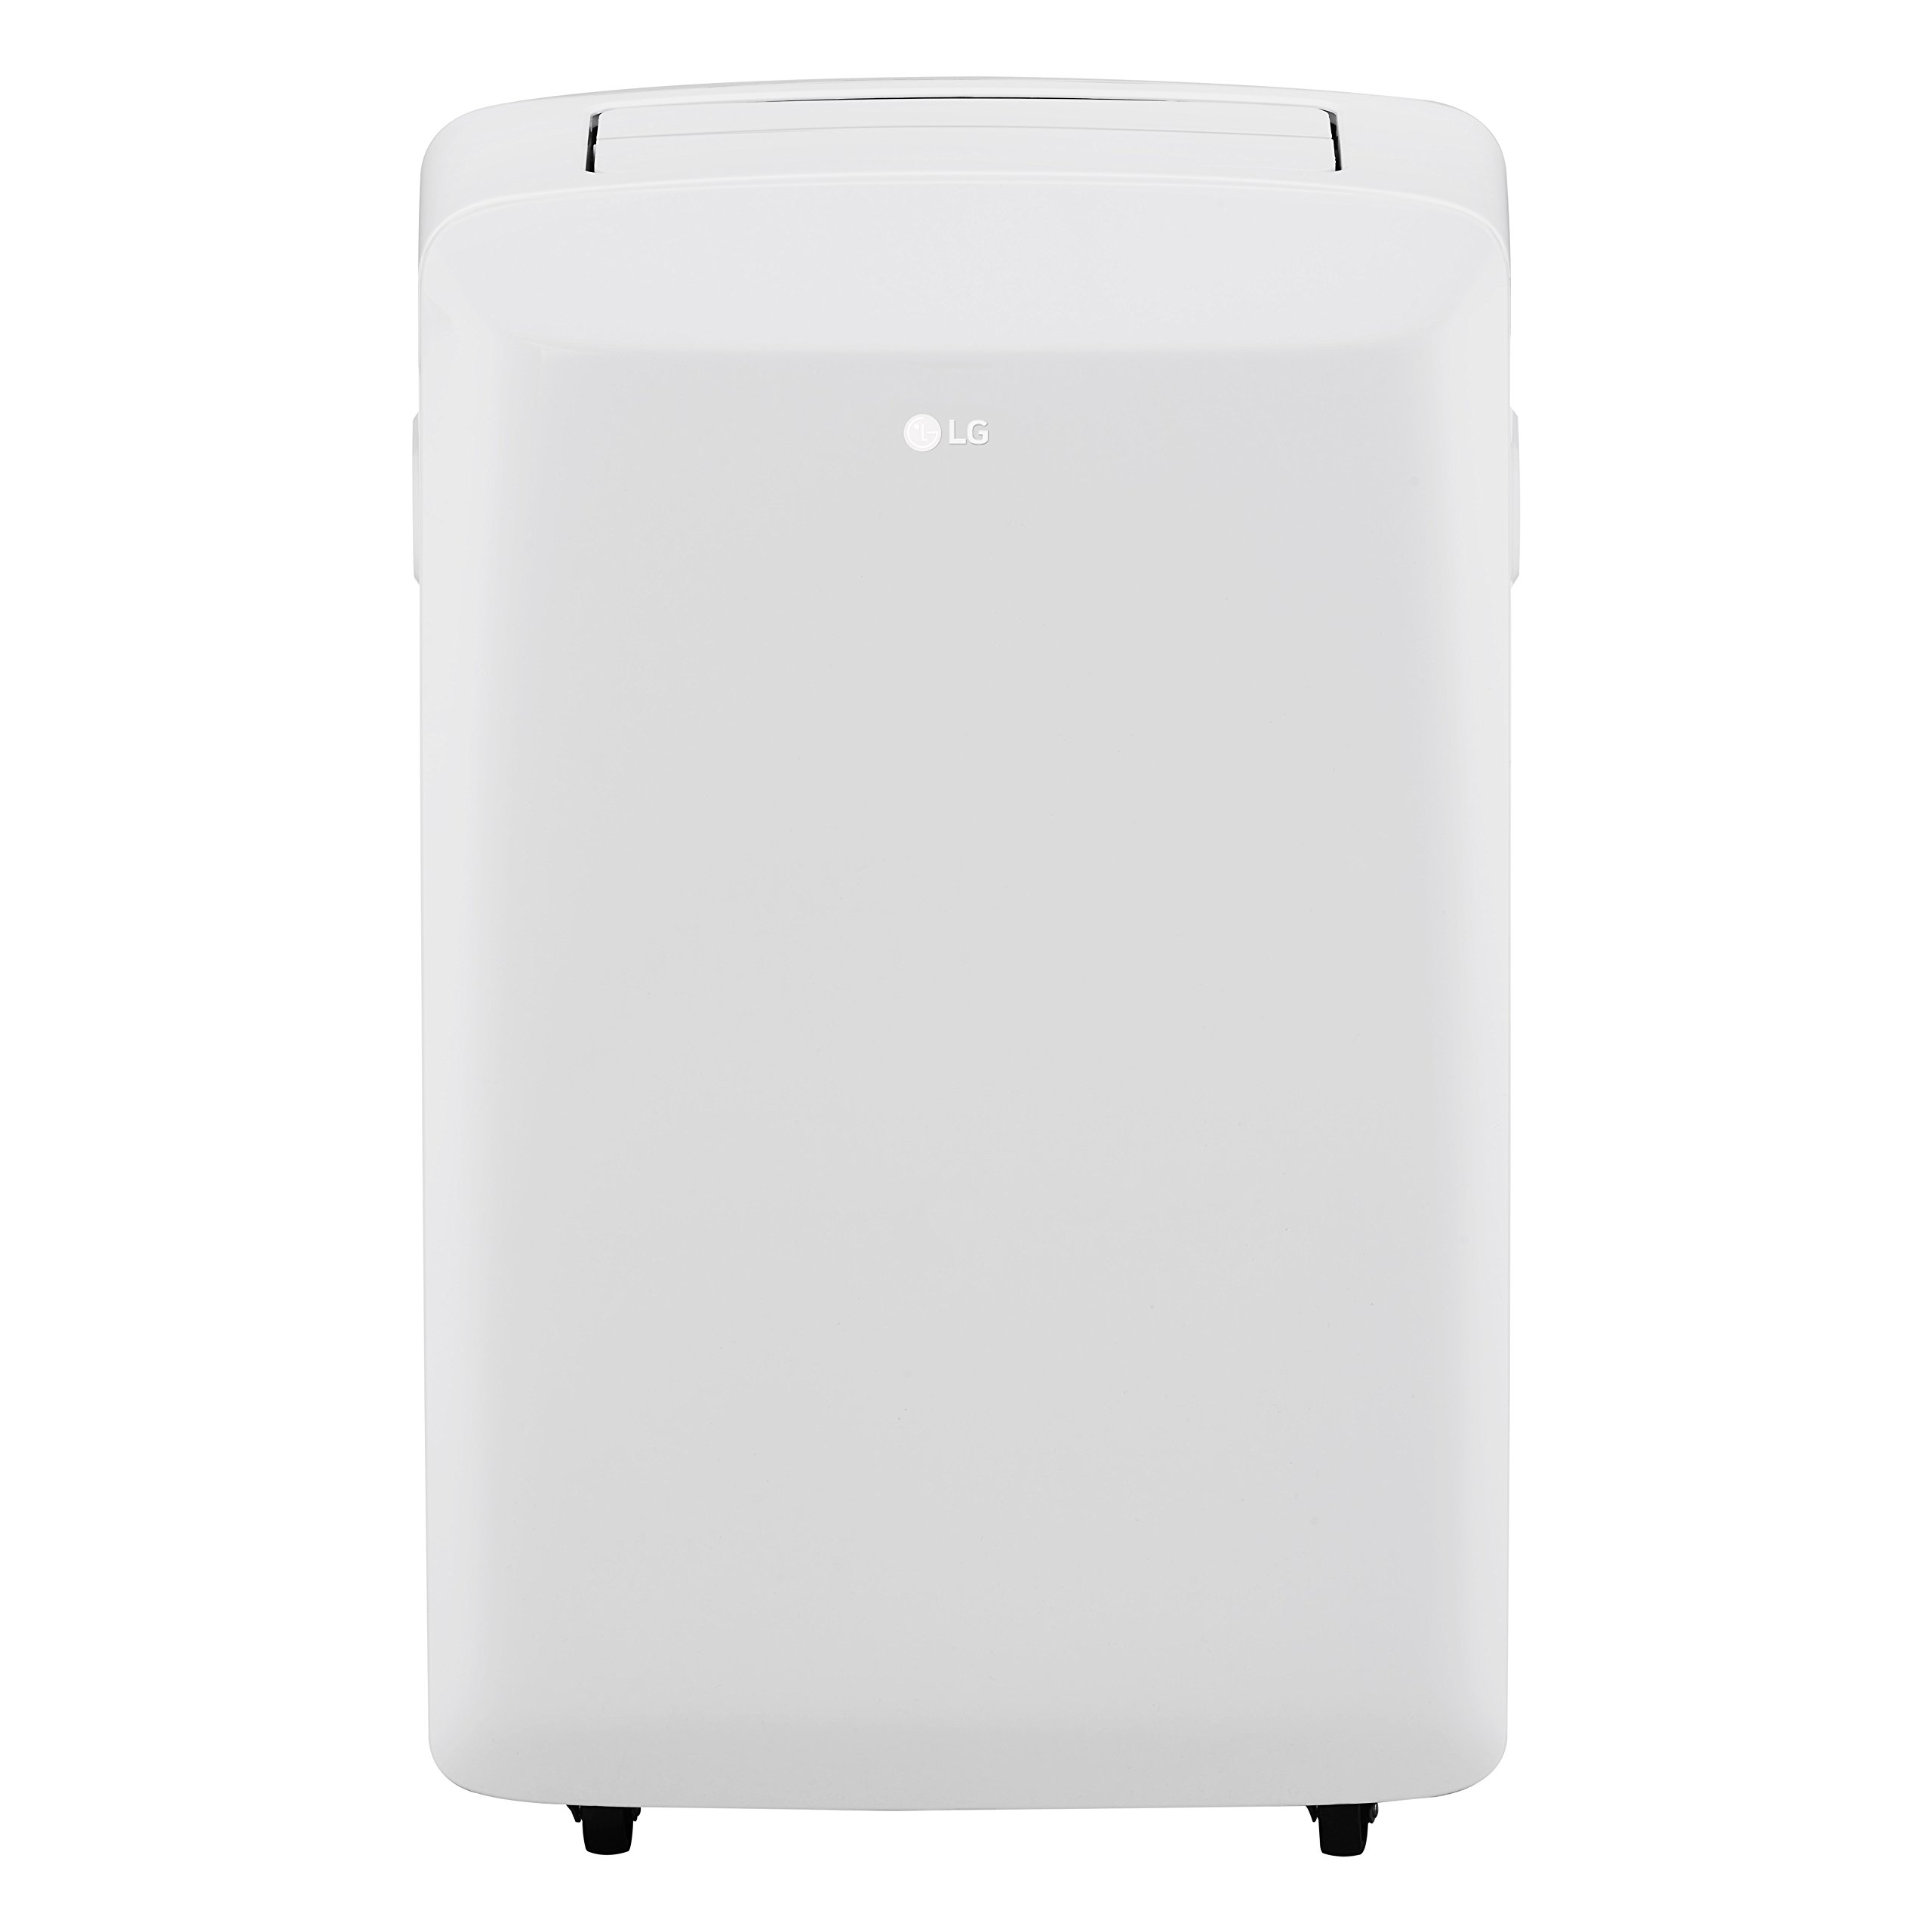 LG LP0817WSR 115V Portable Air Conditioner with Remote Control in White for Rooms up to 150-Sq. Ft. by LG